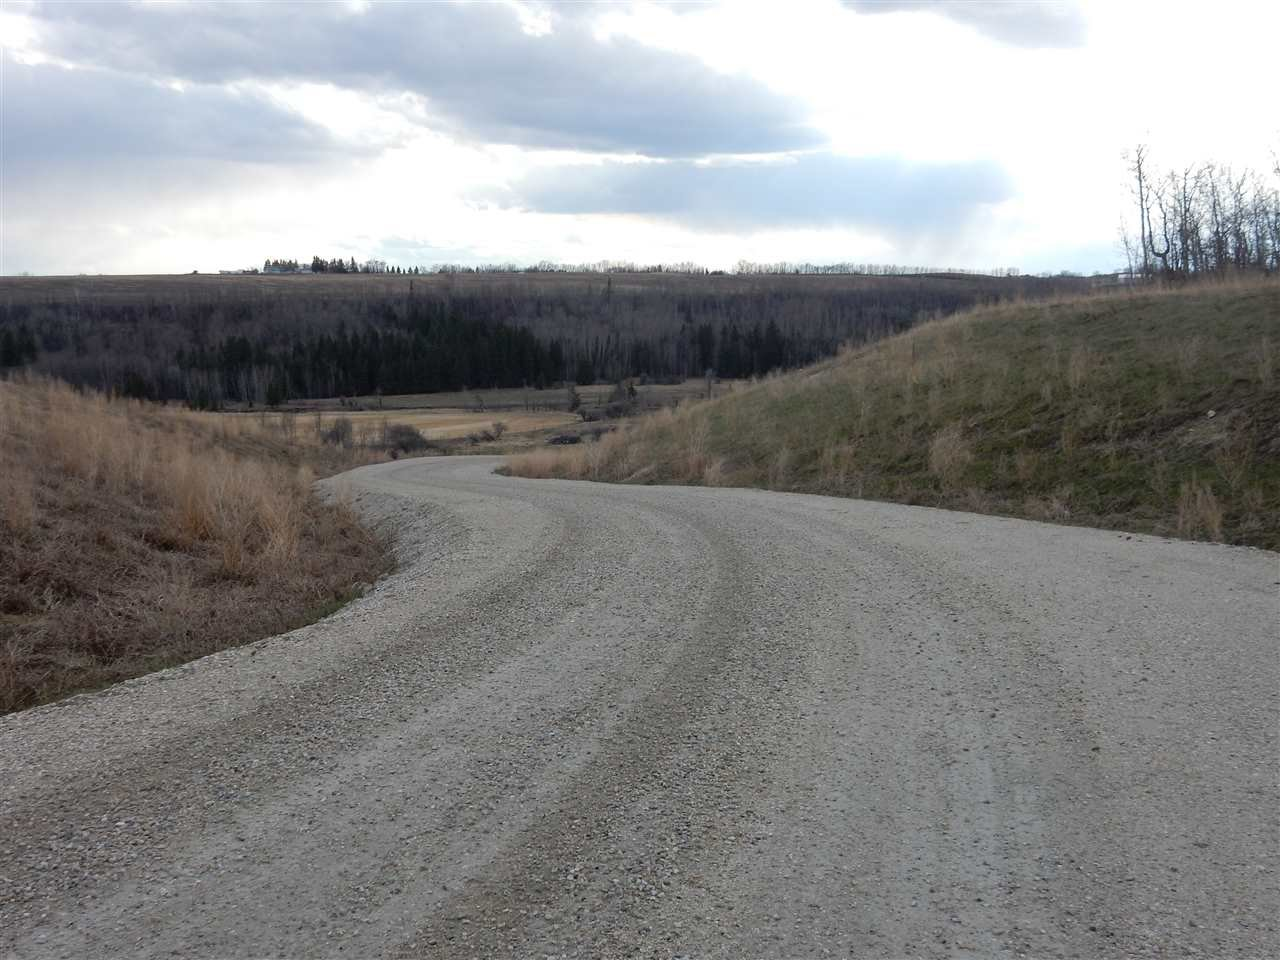 Photo 5: Photos: TWP ROAD 492 RANGE ROAD 234: Rural Leduc County Rural Land/Vacant Lot for sale : MLS®# E4155541